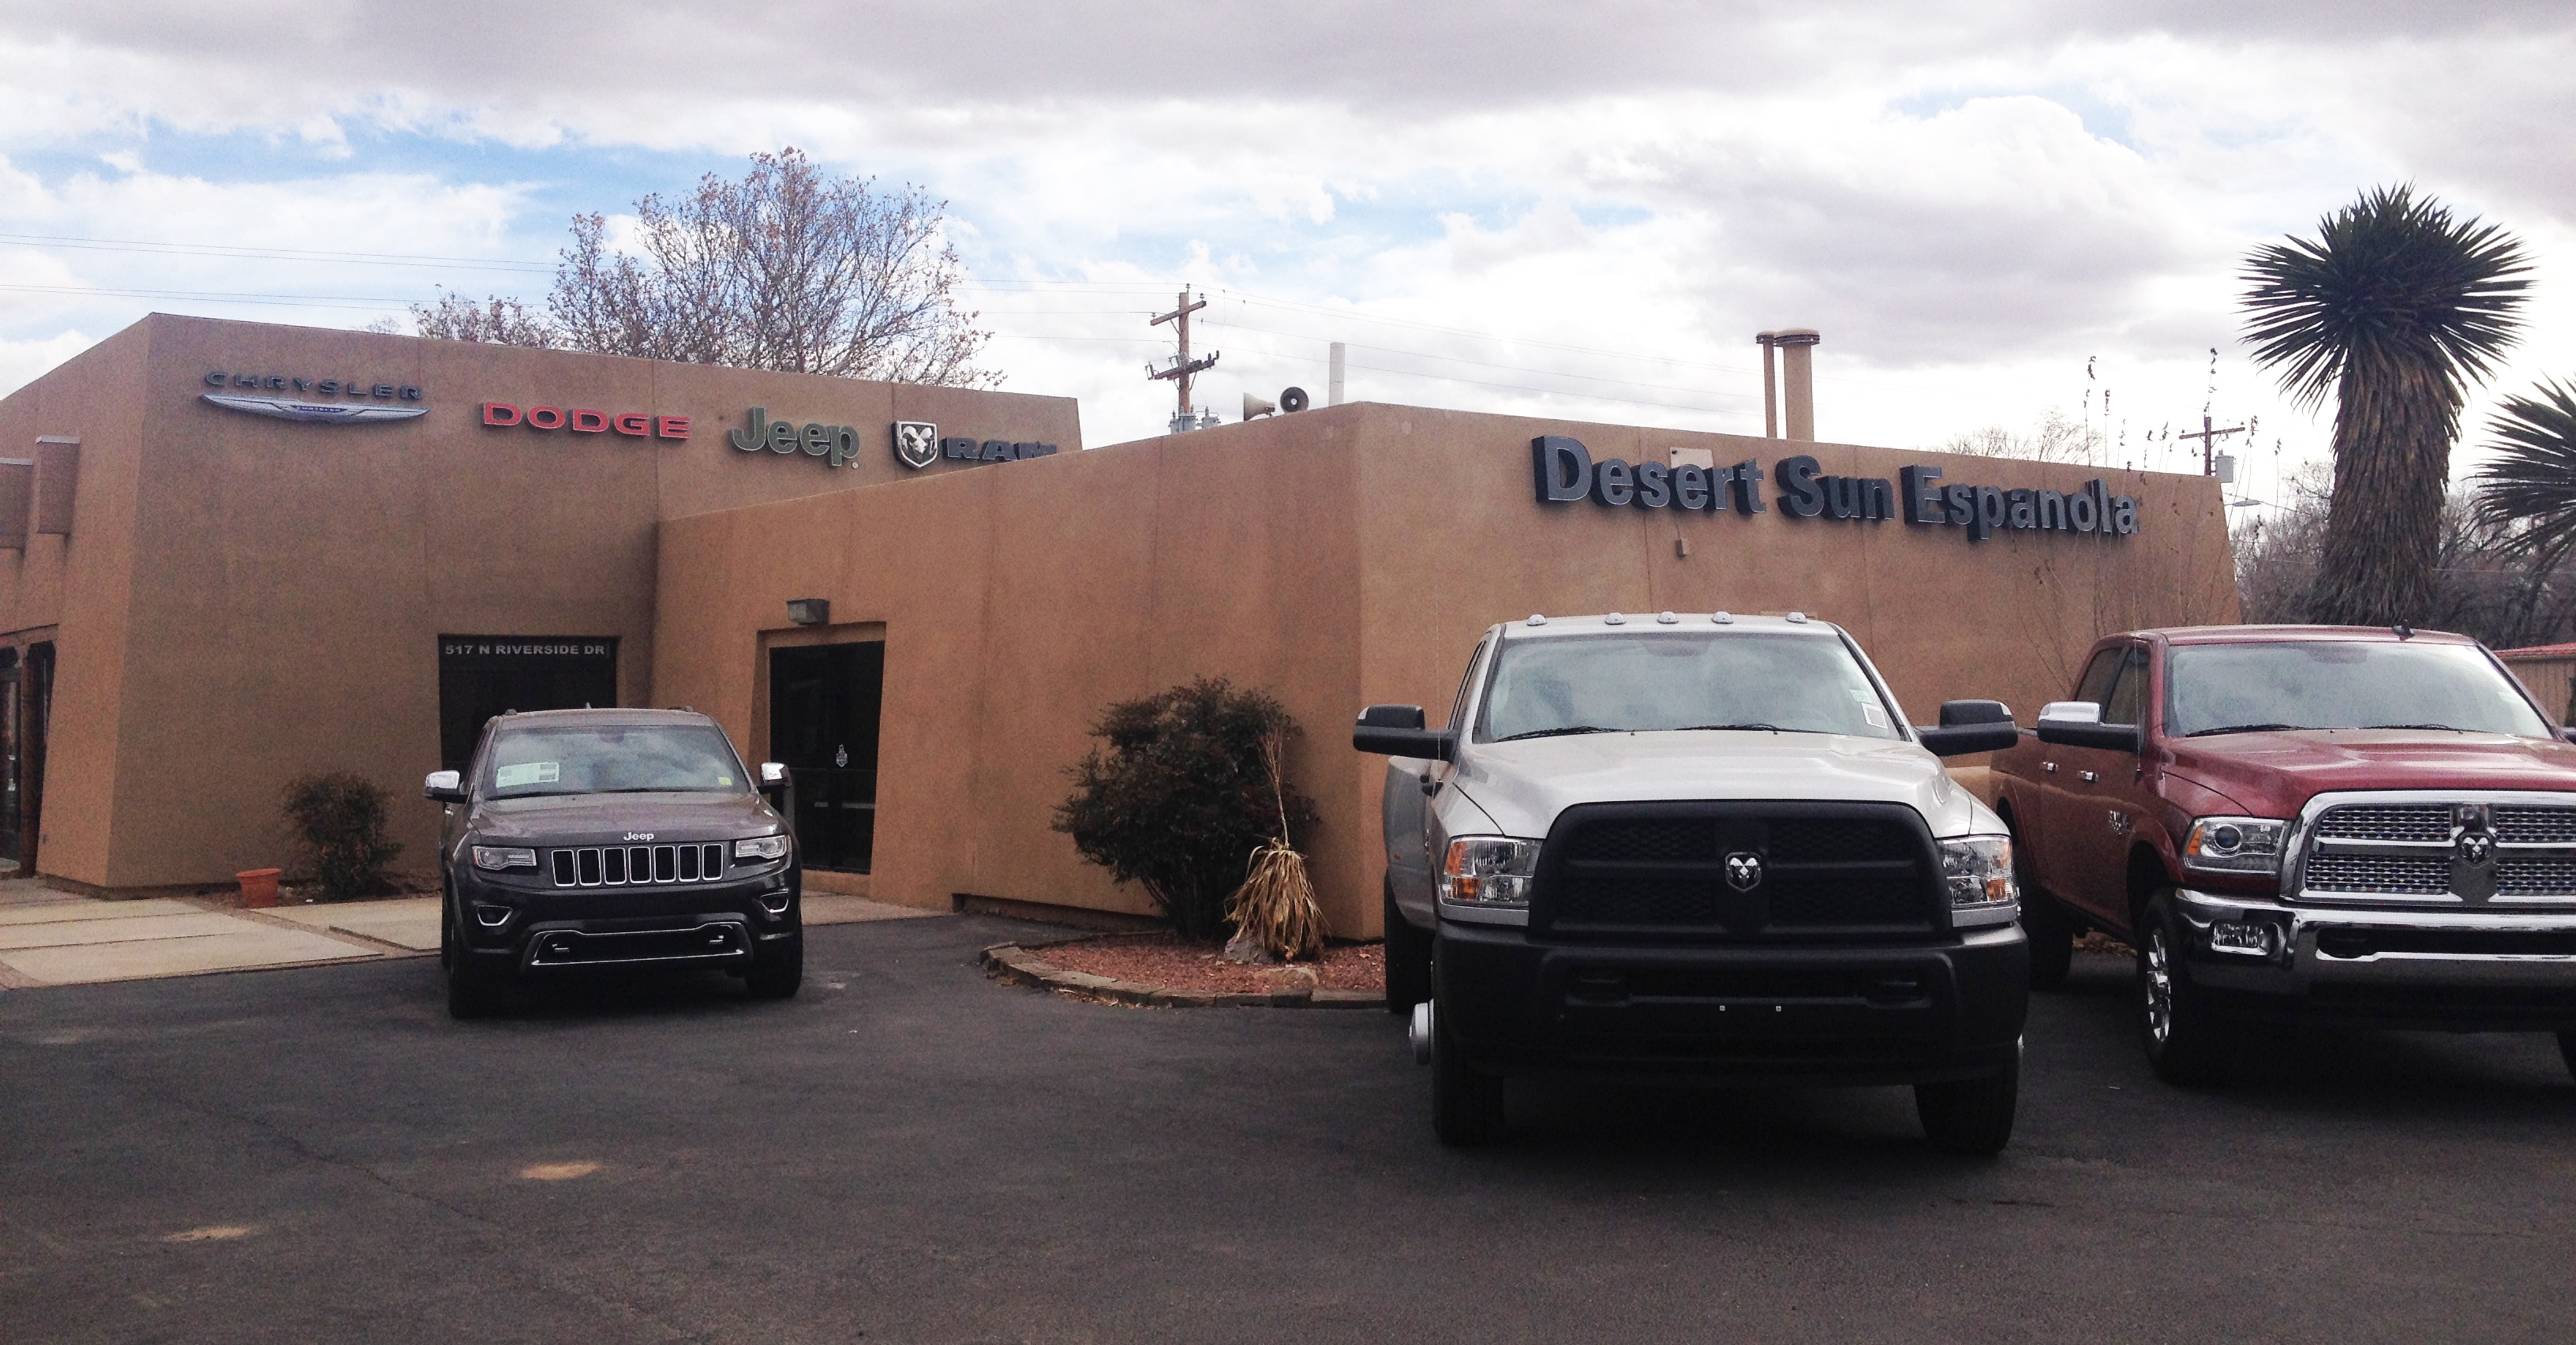 about desert sun espanola inc new used car dealer